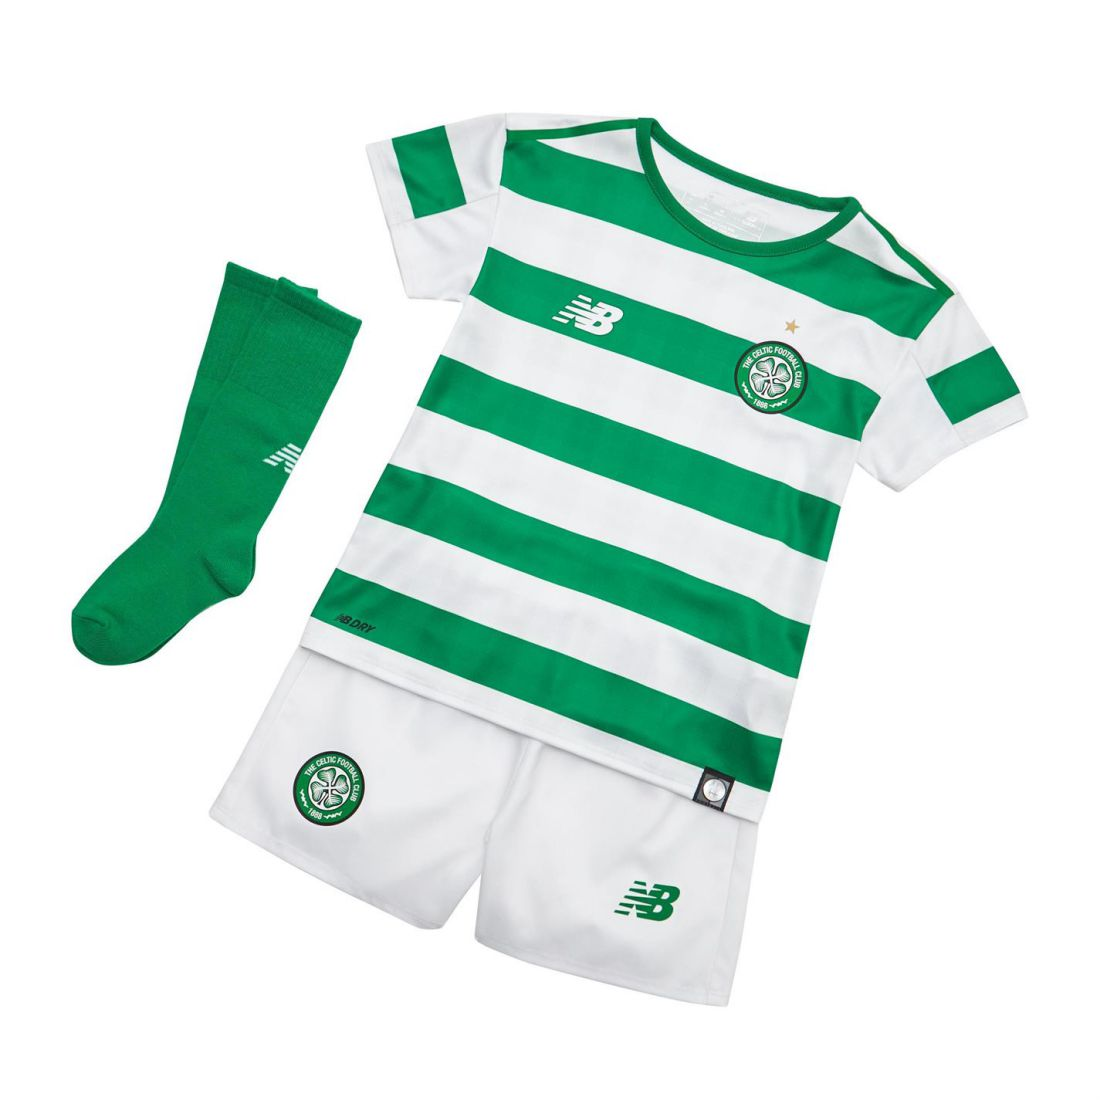 54bdf9f9a New Balance Kids Boys Celtic Home Mini Kit 2018 2019 Domestic ...